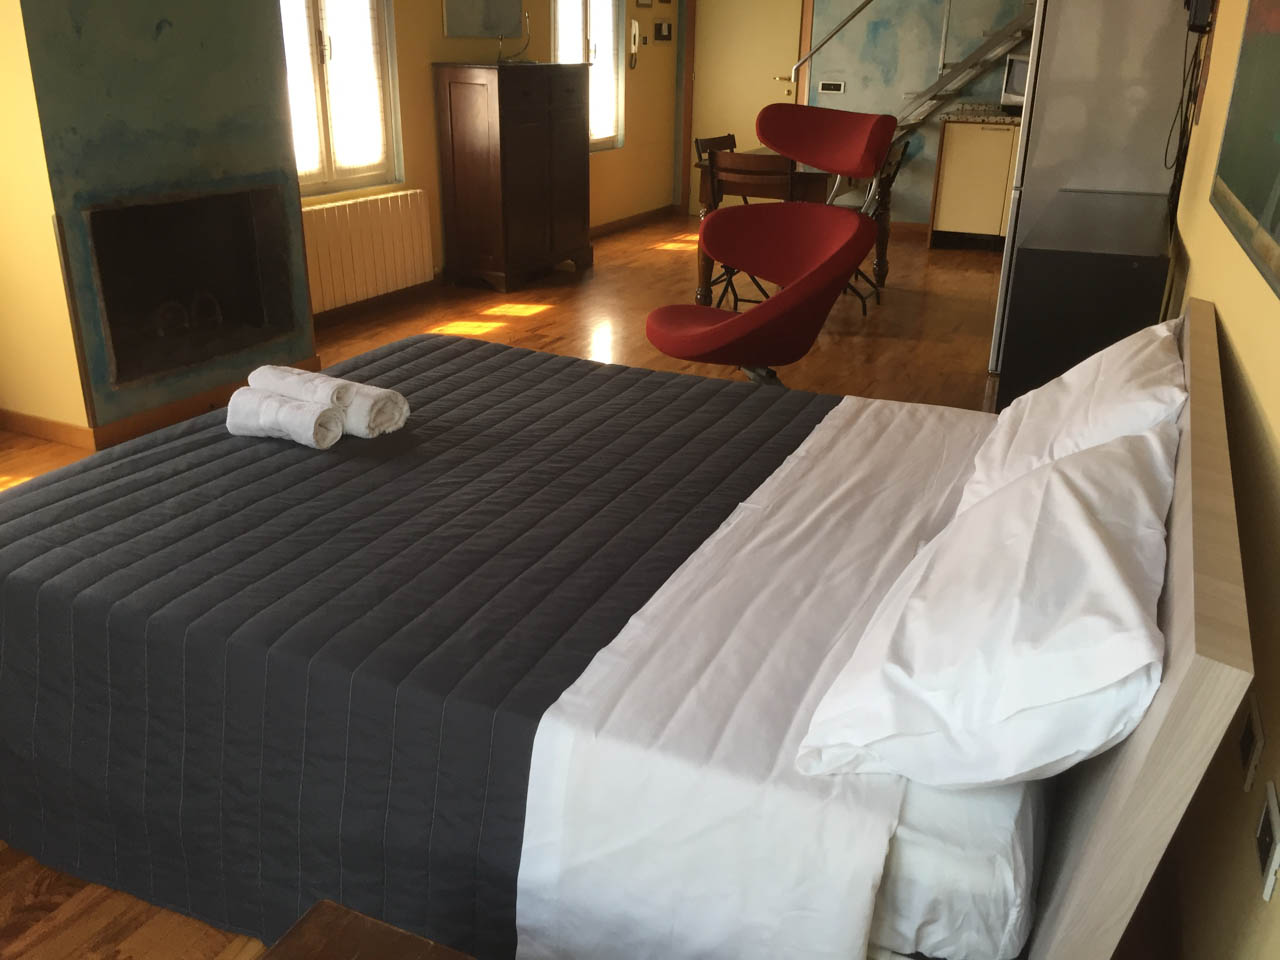 bed-and-breakfast-treviglio-camera-cielo-0004